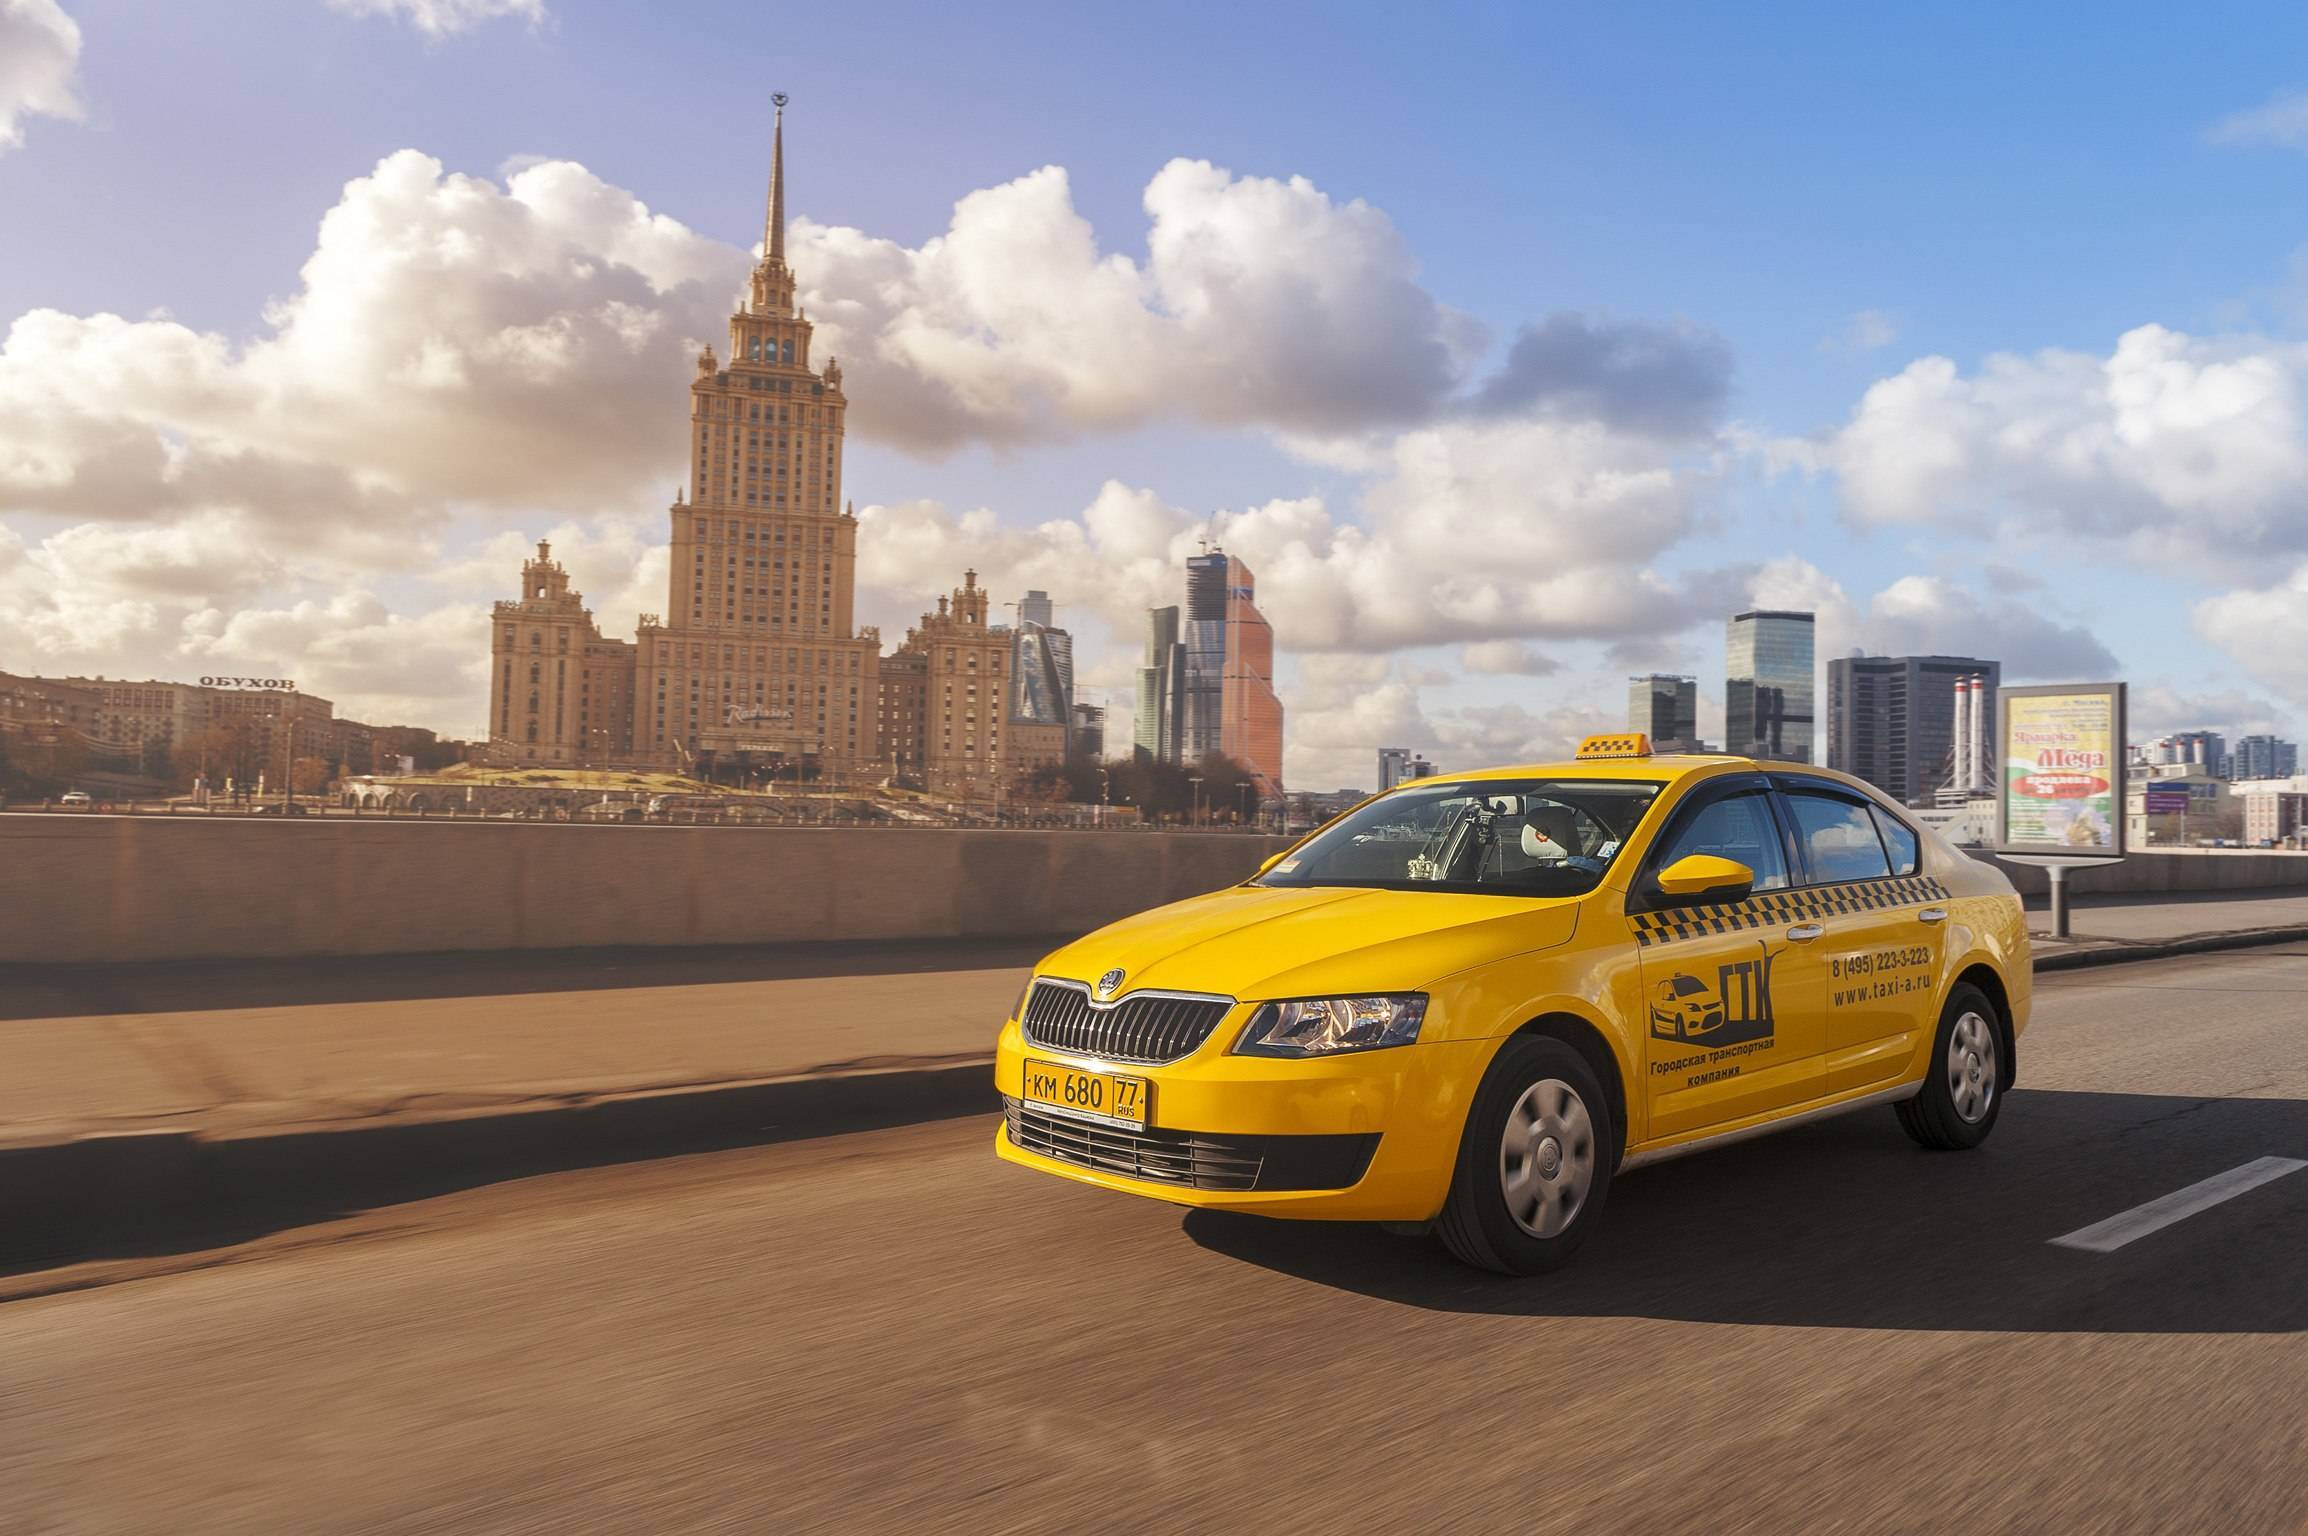 moscow taxi cab fare from moscow airport prices and rates 2019